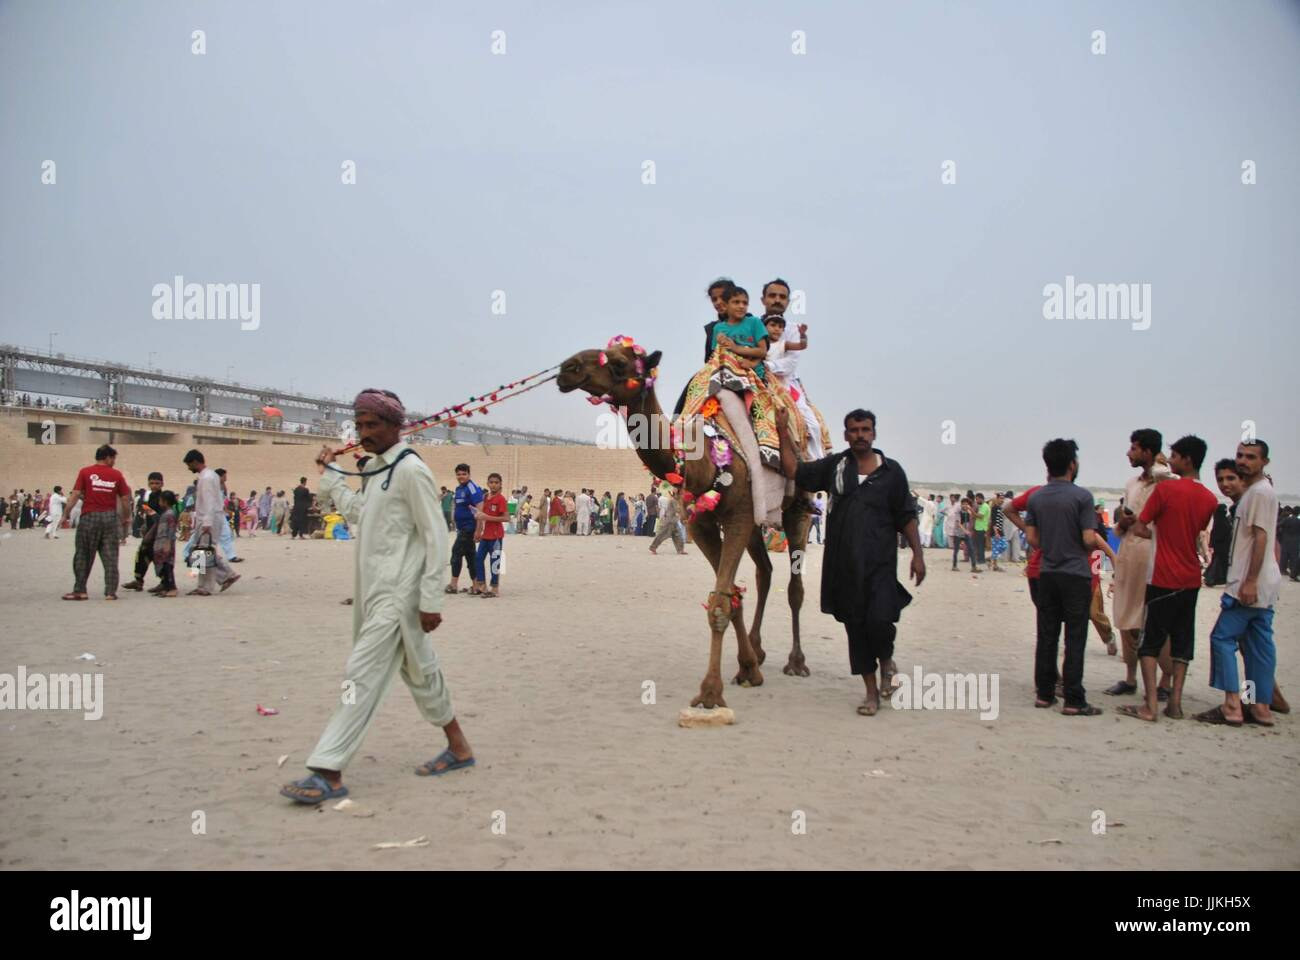 Jamshoro, Pakistan  19th July, 2017  peoples are enjoying the camel